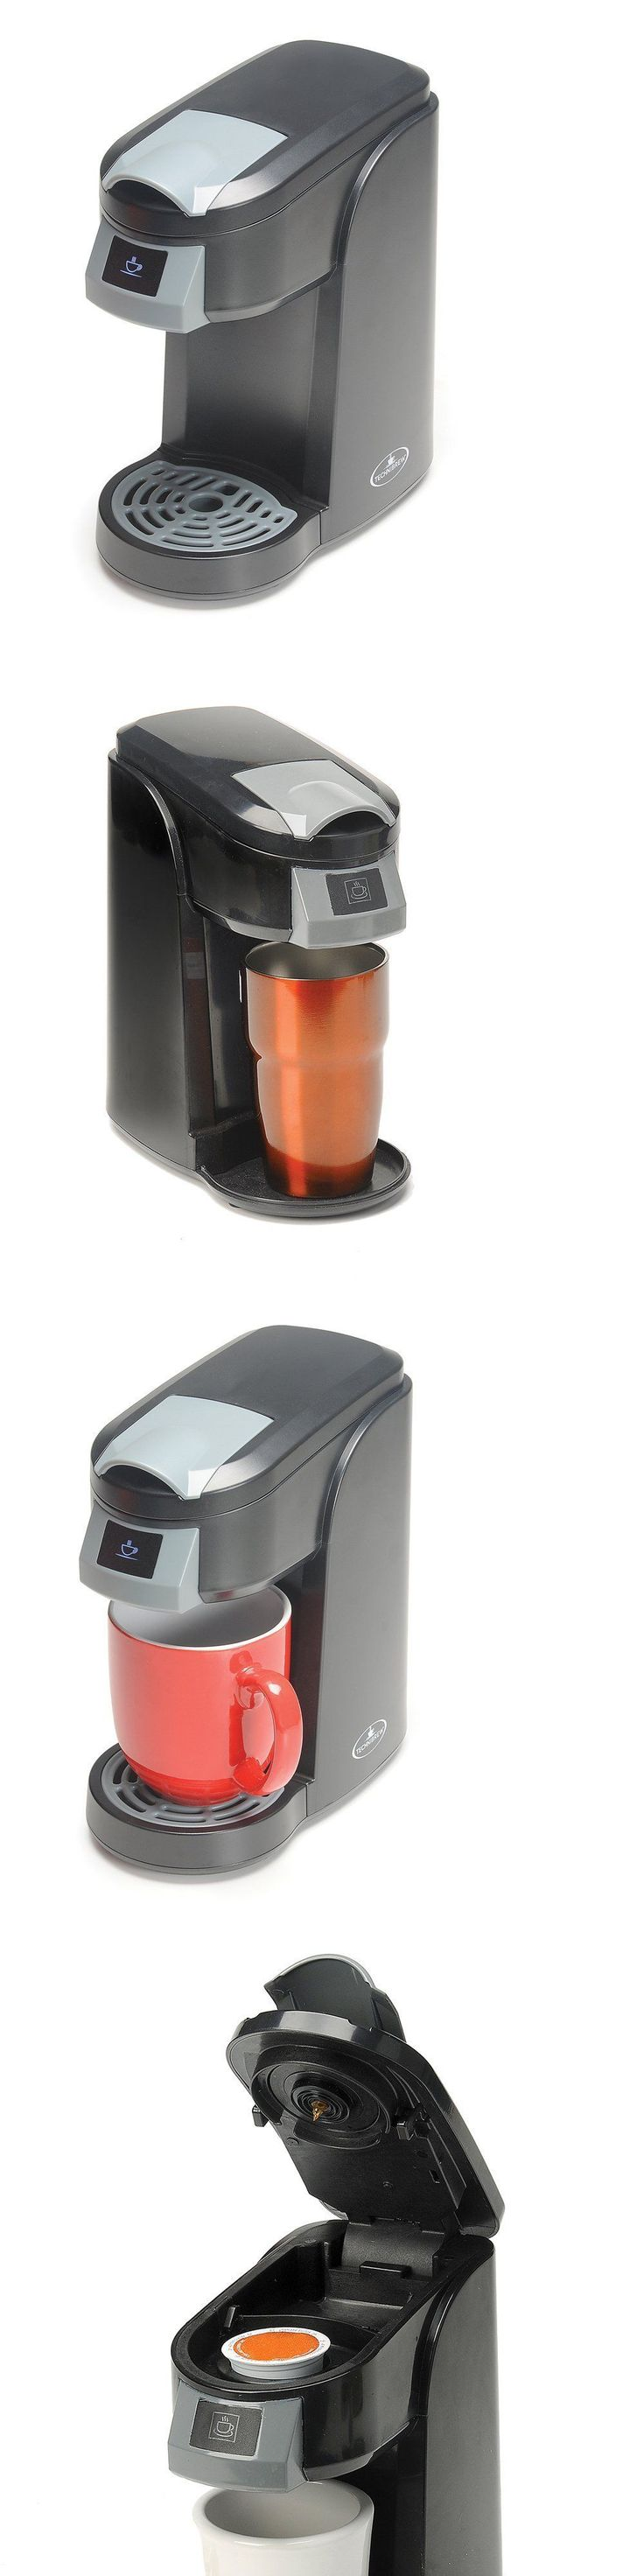 Single Serve Brewers 156775: New Technibrew Single Cup Coffee Maker, Free 3 Day Shipping -> BUY IT NOW ONLY: $49.99 on eBay!